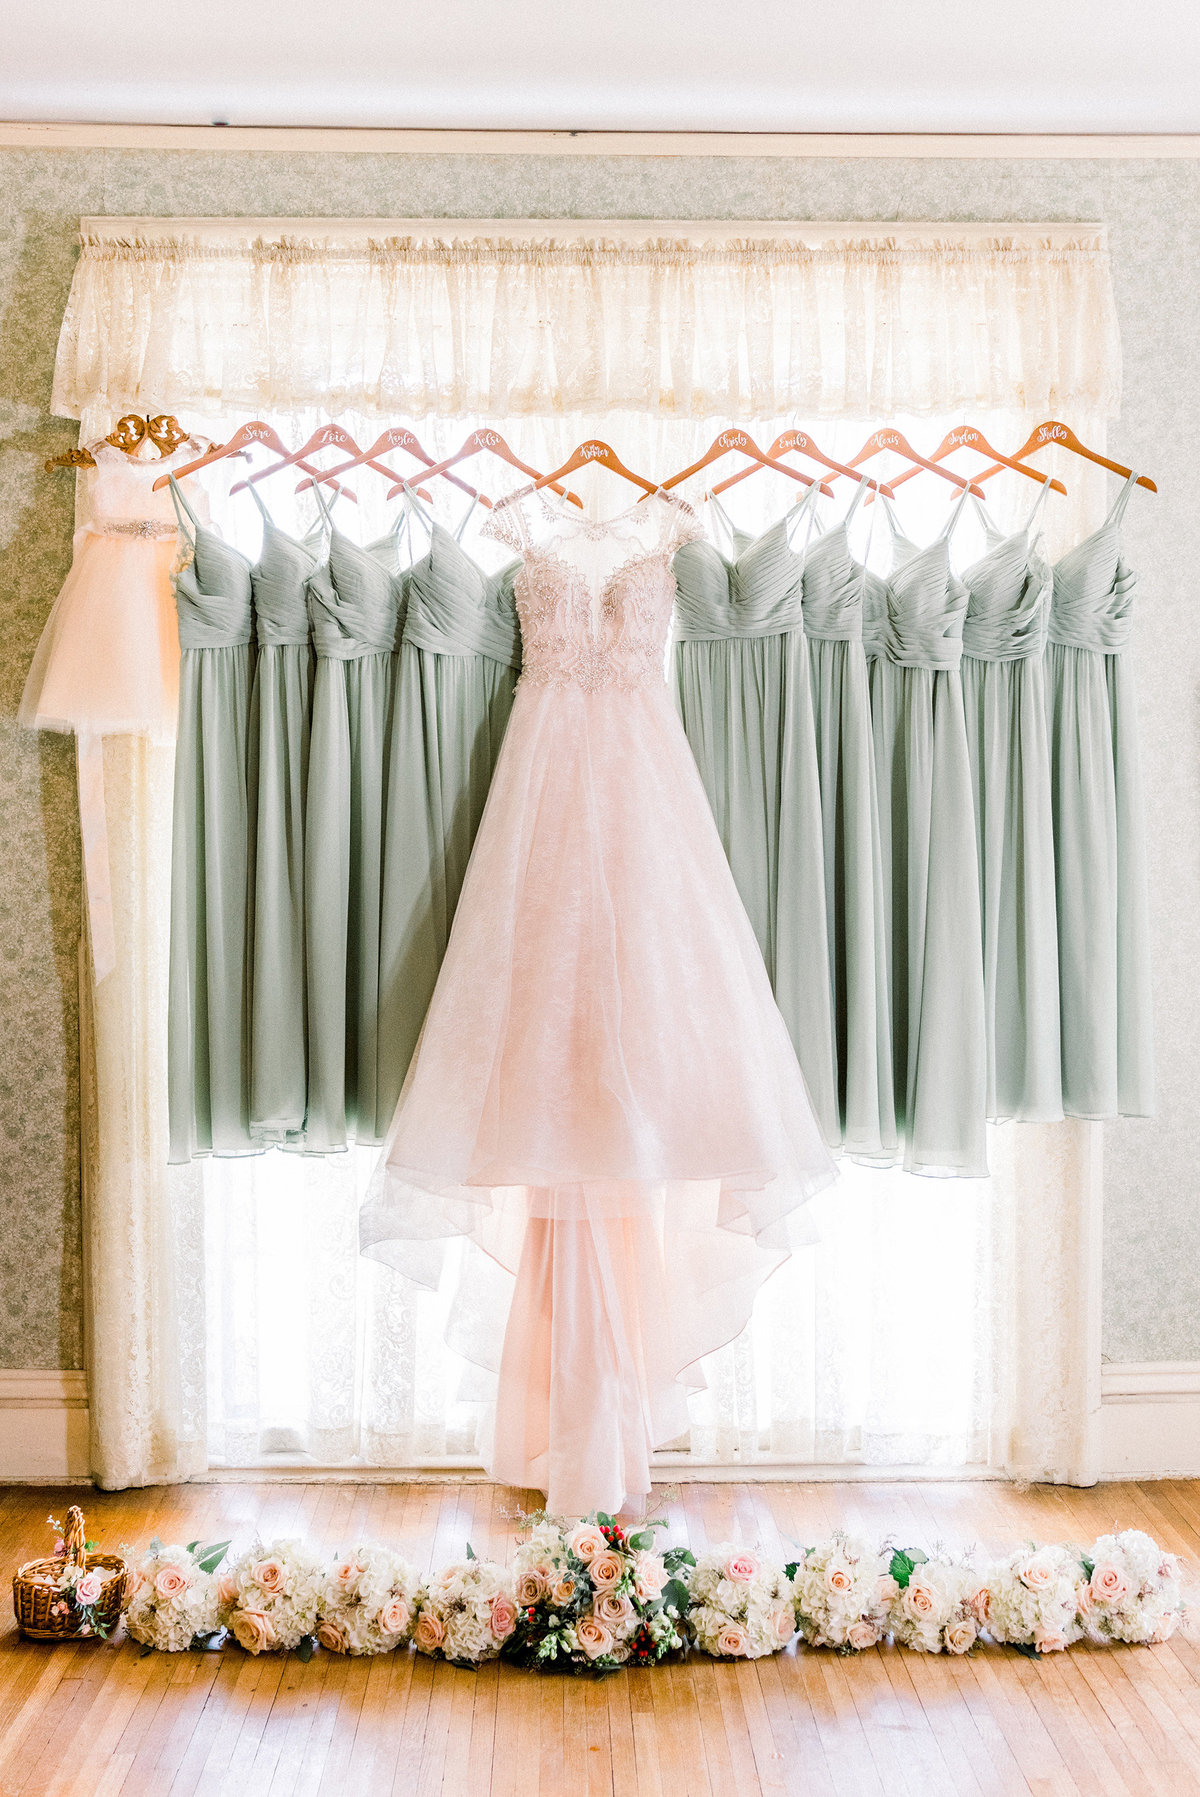 beauitufl vintage wedding dresses hang in the window of cedar falls woman's club